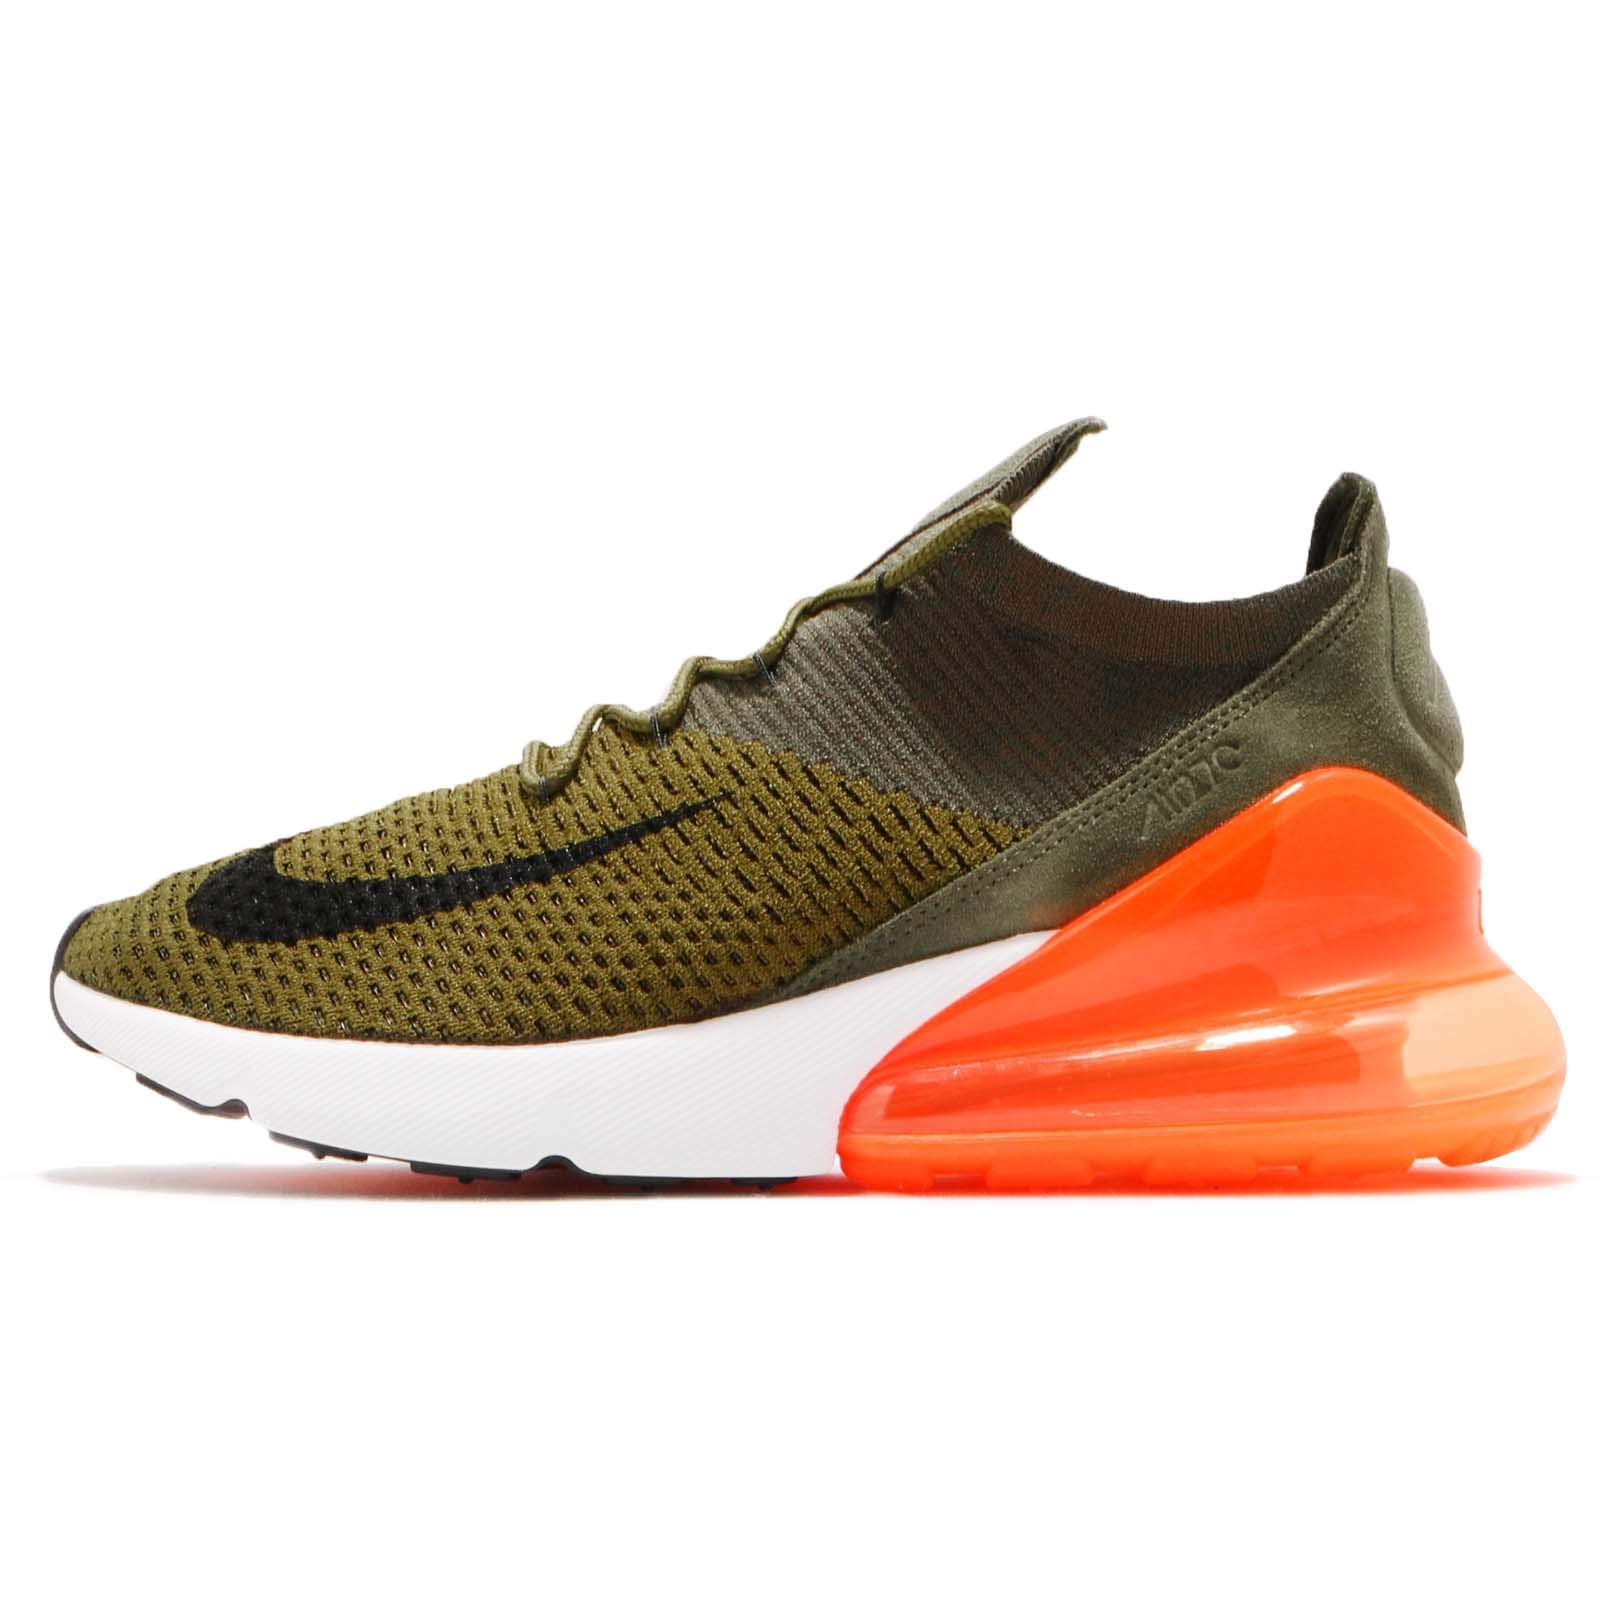 ca18e9abe4b6b7 Galleon - NIKE Men s Air Max 270 Flyknit Olive Flak Black Cargo Khaki Nylon  Basketball Shoes 13 (D) M US